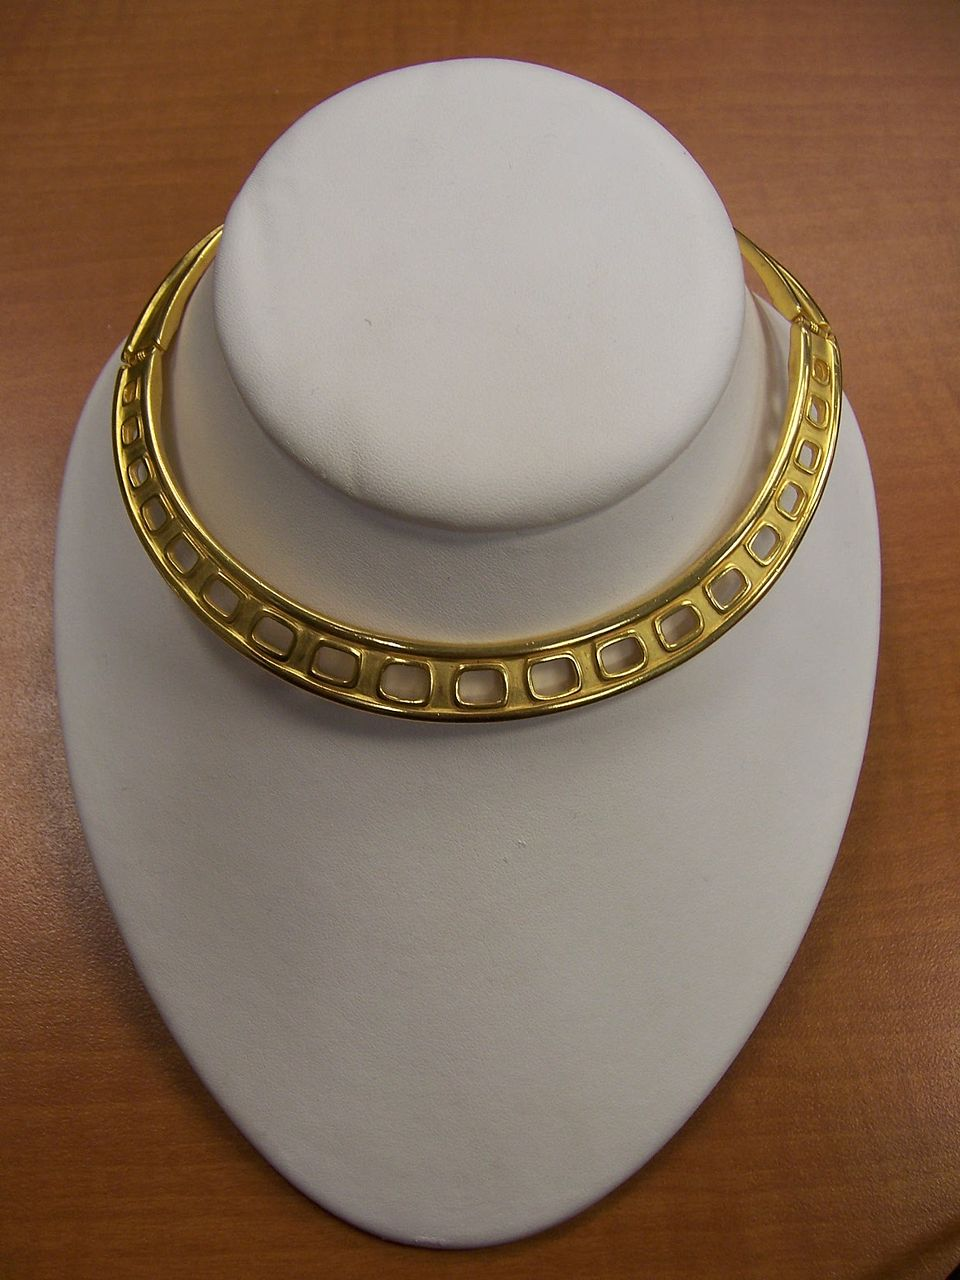 Givenchy NeckCuff in Gold Plate